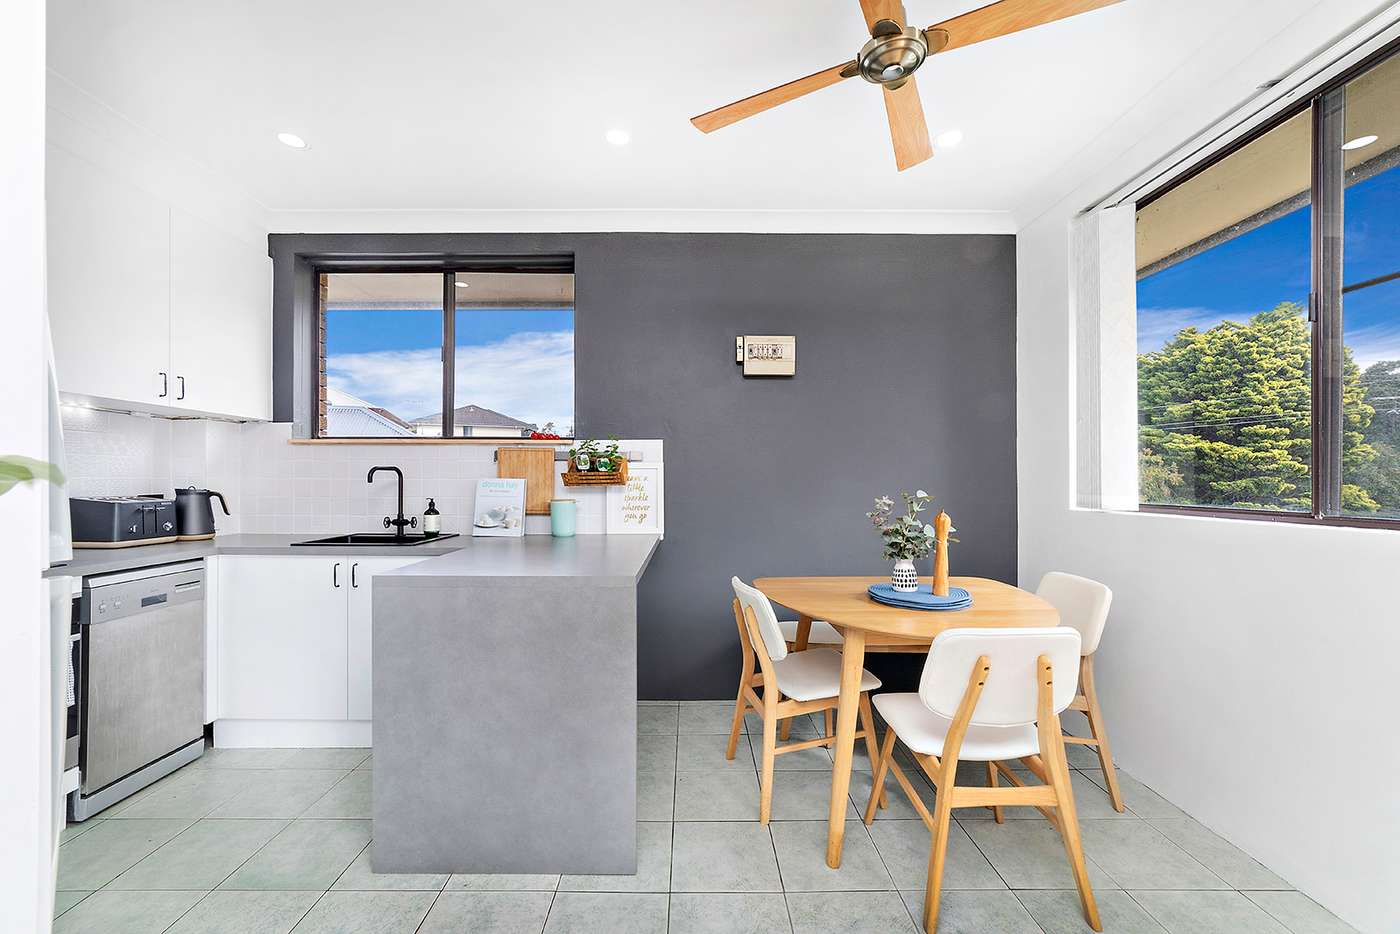 Sixth view of Homely unit listing, 5/7 David Street, West Wollongong NSW 2500